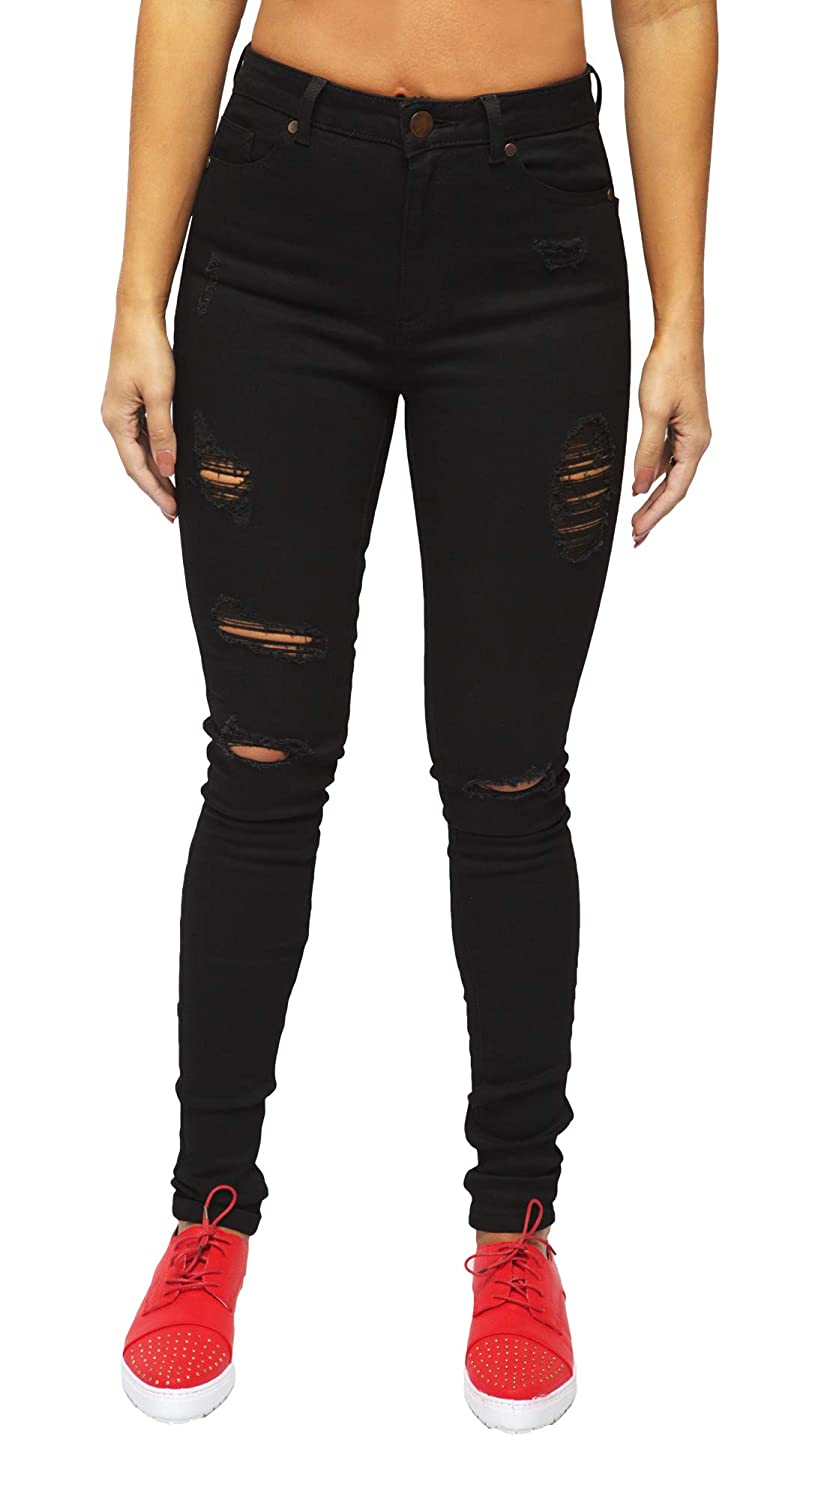 2529773eaccdd Heels & Jeans Ripped Skinny Jeans for Women High Waisted Stretch Distressed  Pants (Black, 10) at Amazon Women's Jeans store